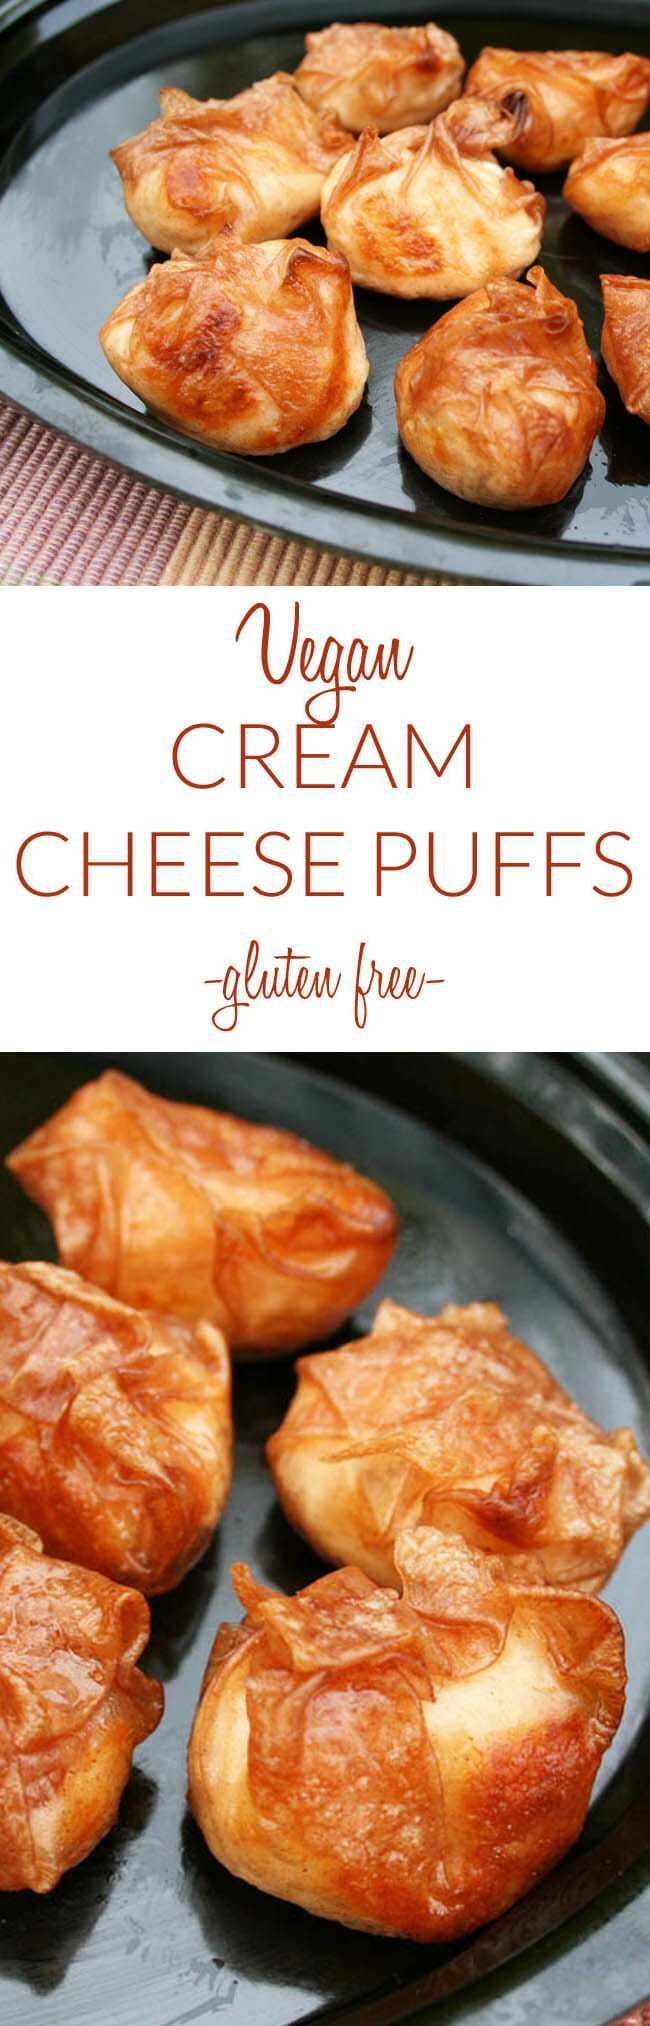 Vegan Cream Cheese Puffs Vegan Gluten Free These Rich Crispy And Creamy Appetizers Are Really Additive Vegan Appetizers Recipes Food Vegan Recipes Healthy